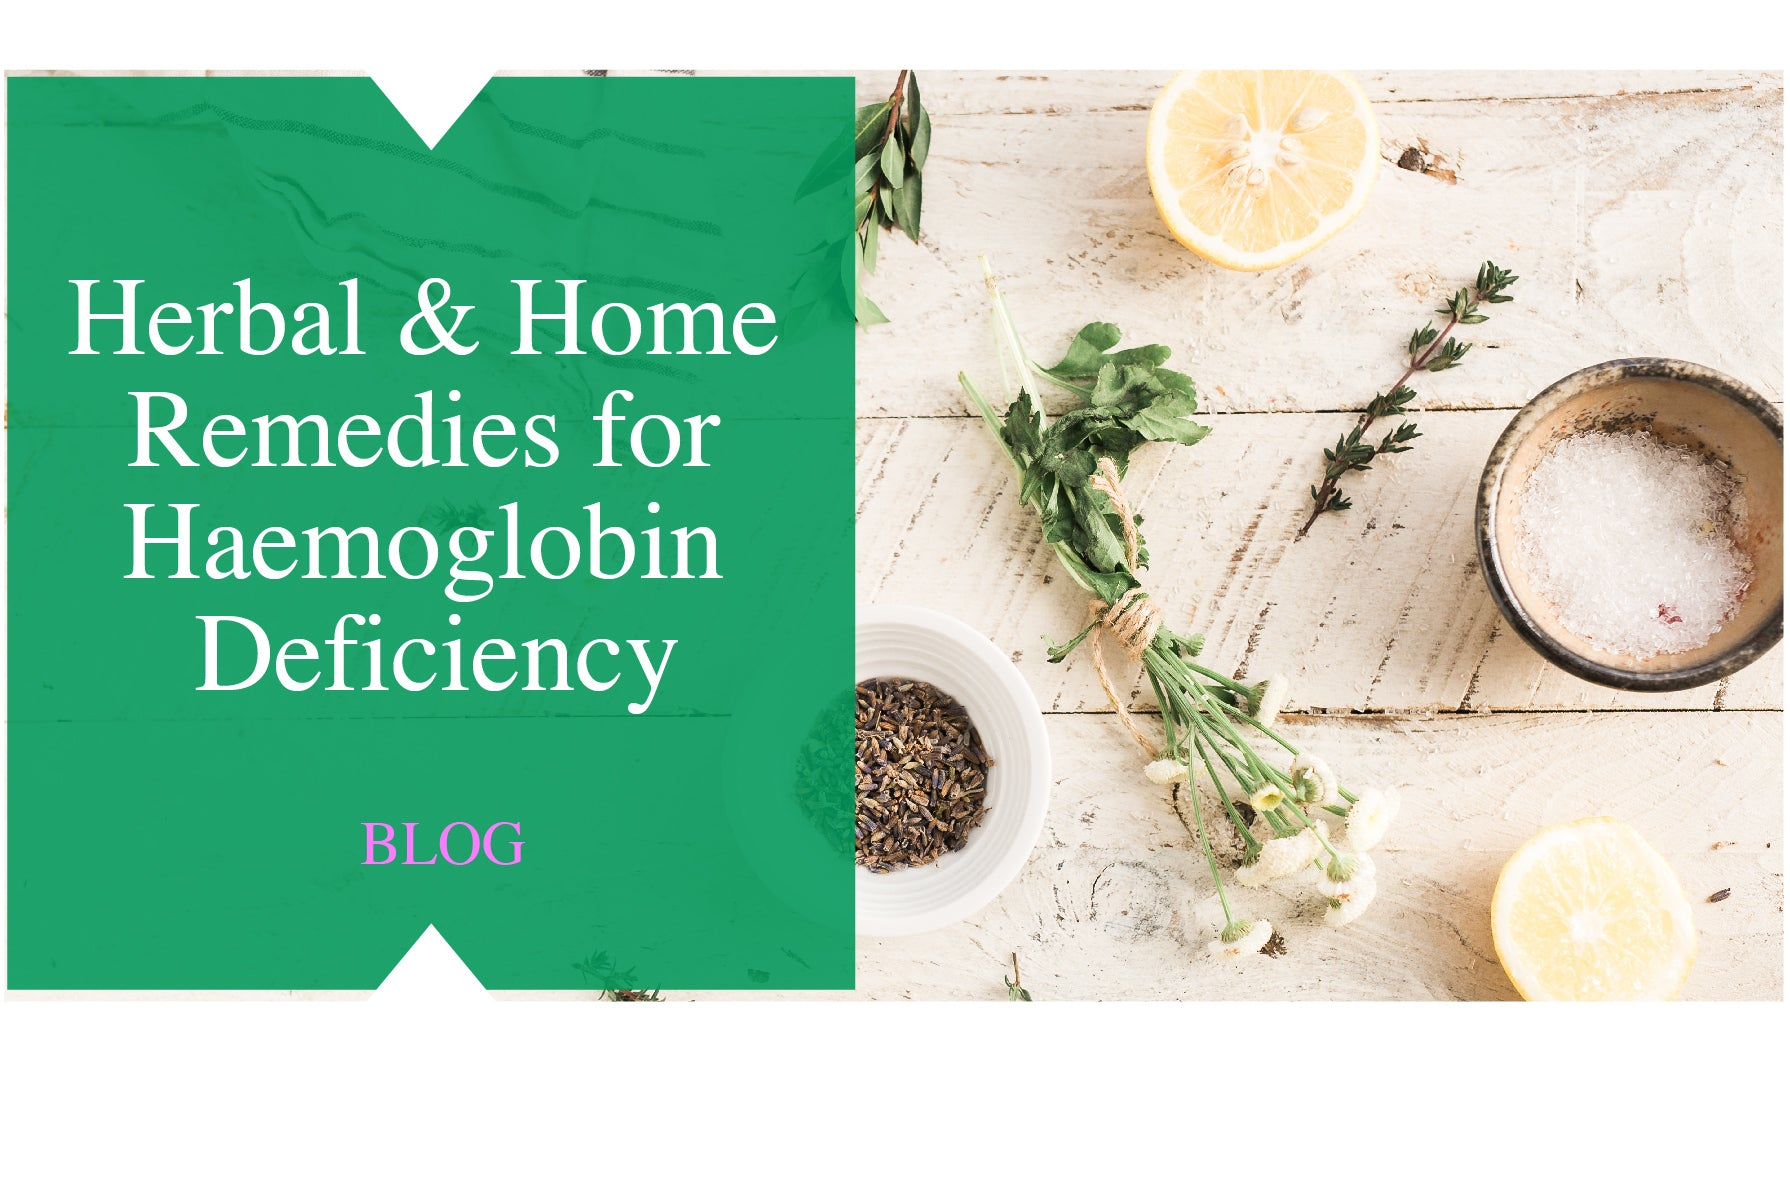 Herbal & Home Remedies for Haemoglobin Deficiency